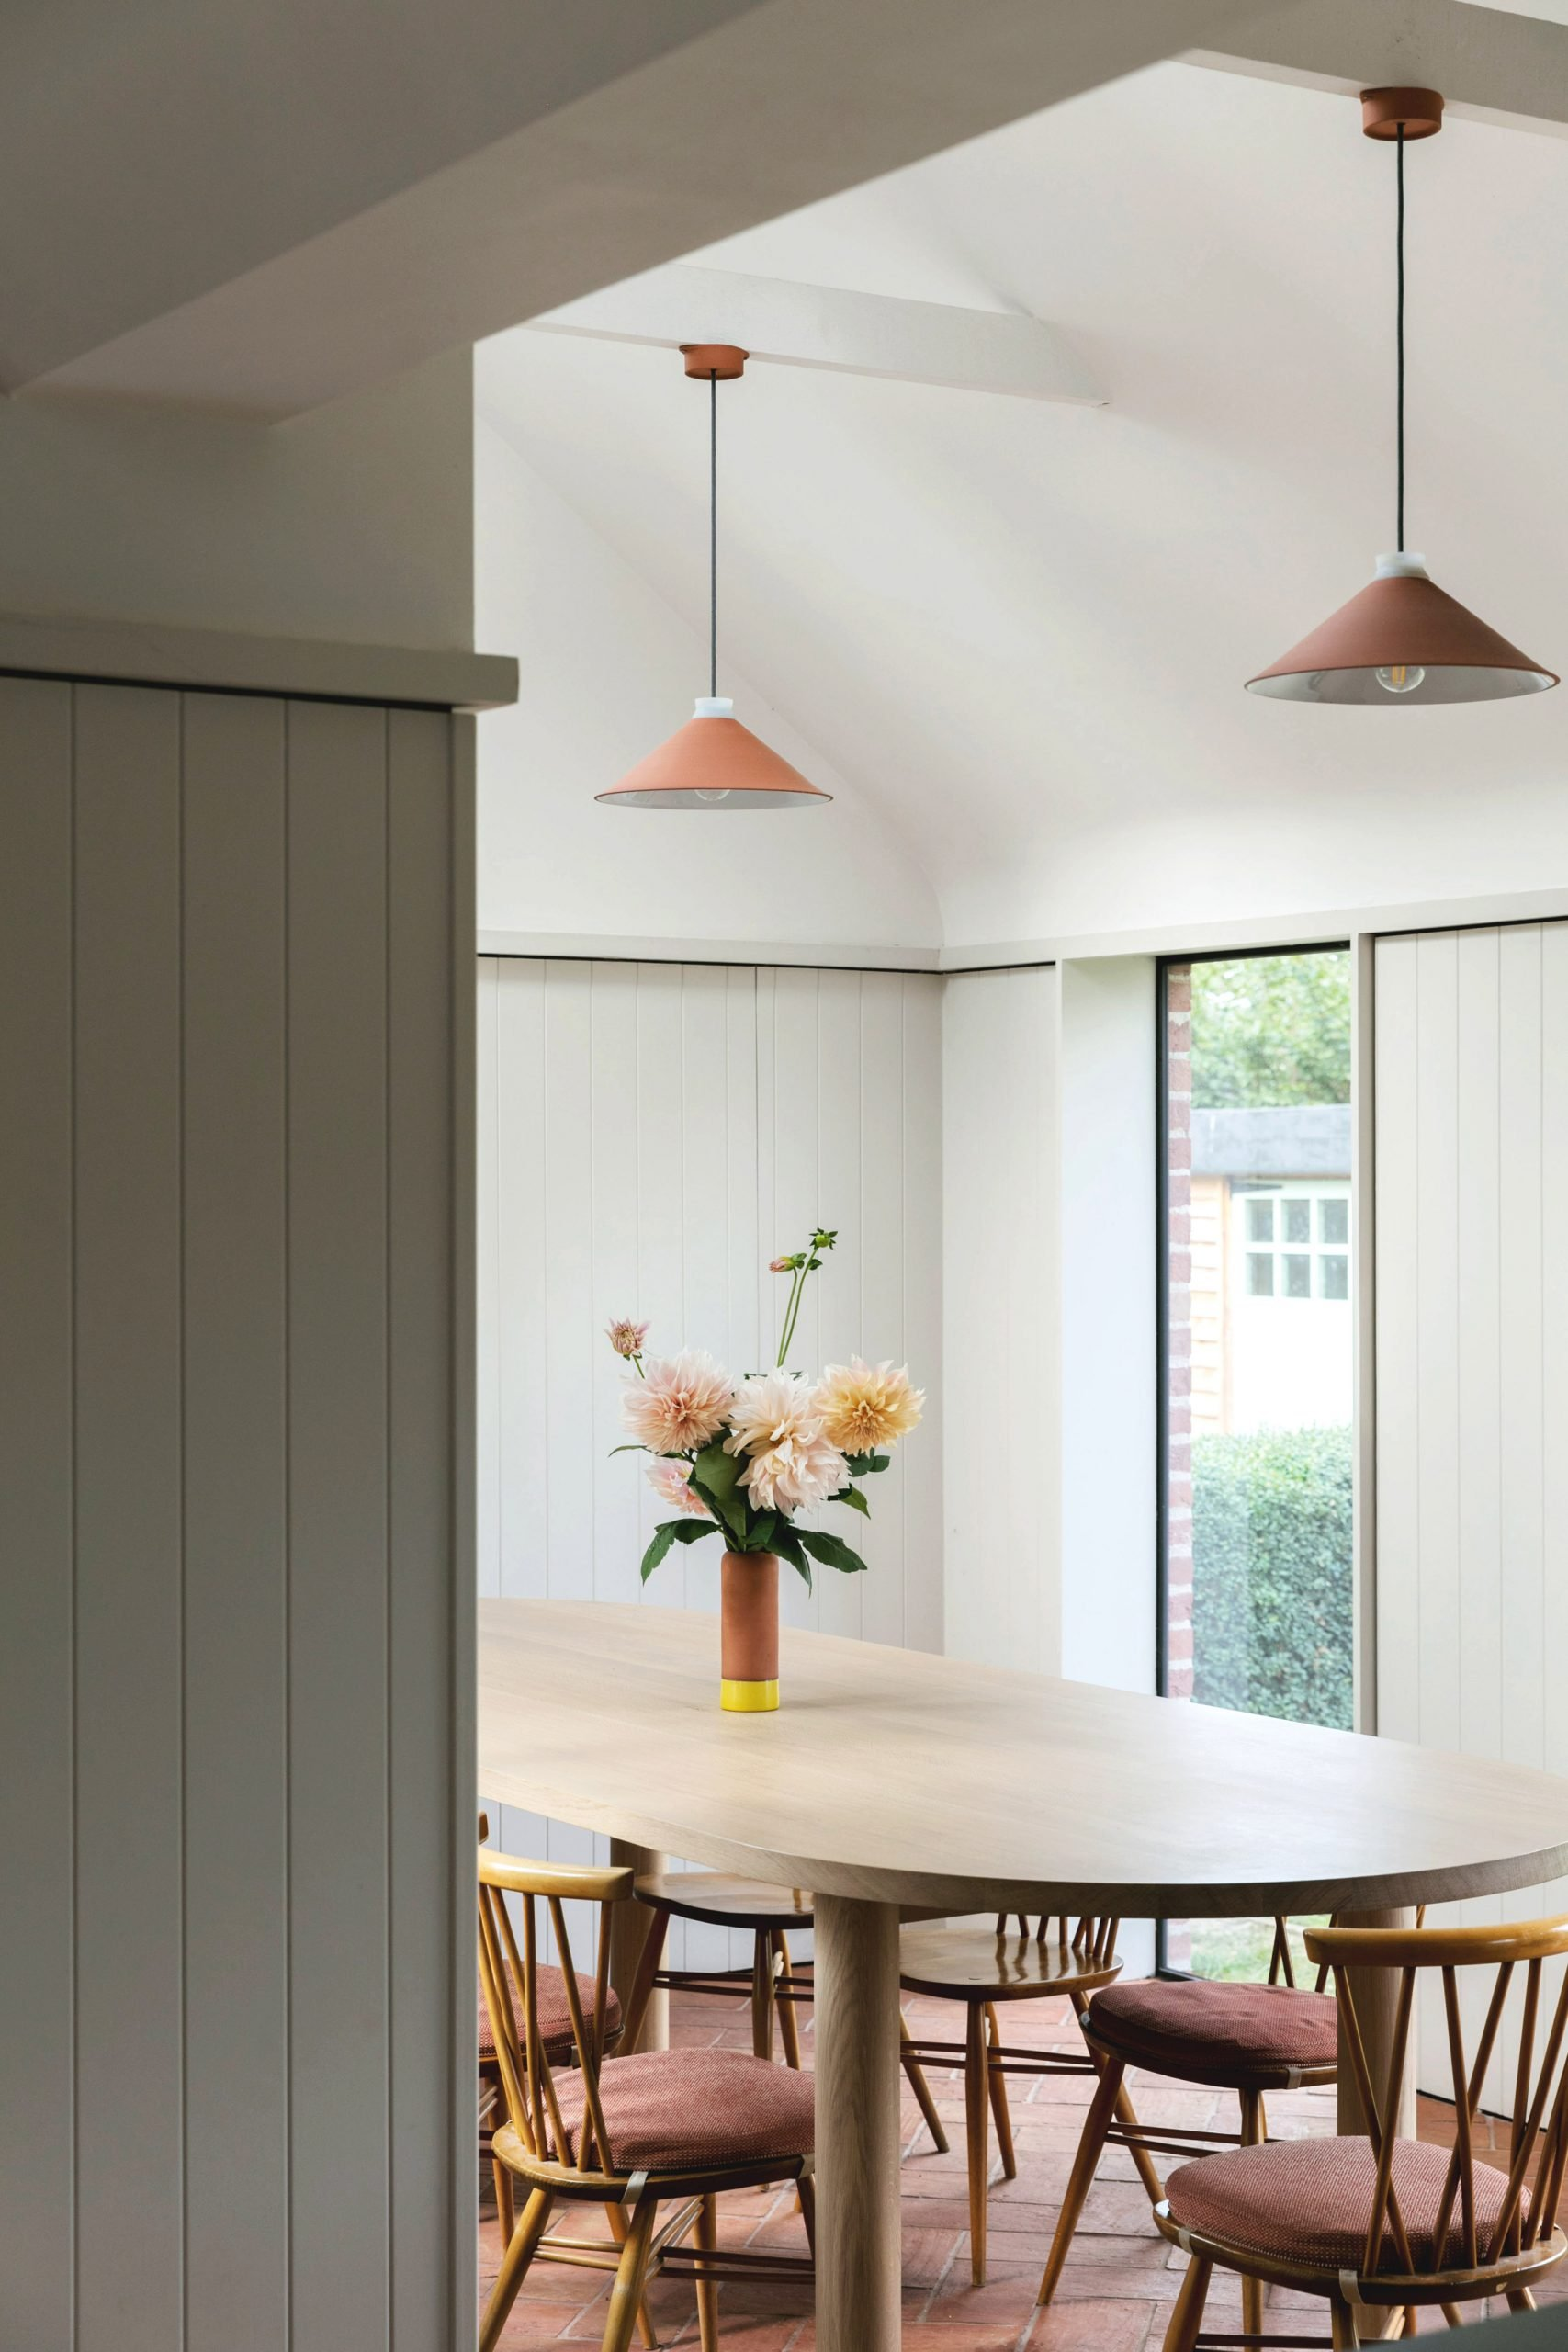 Dining table of Farley Farmhouse by Emil Eve Architects